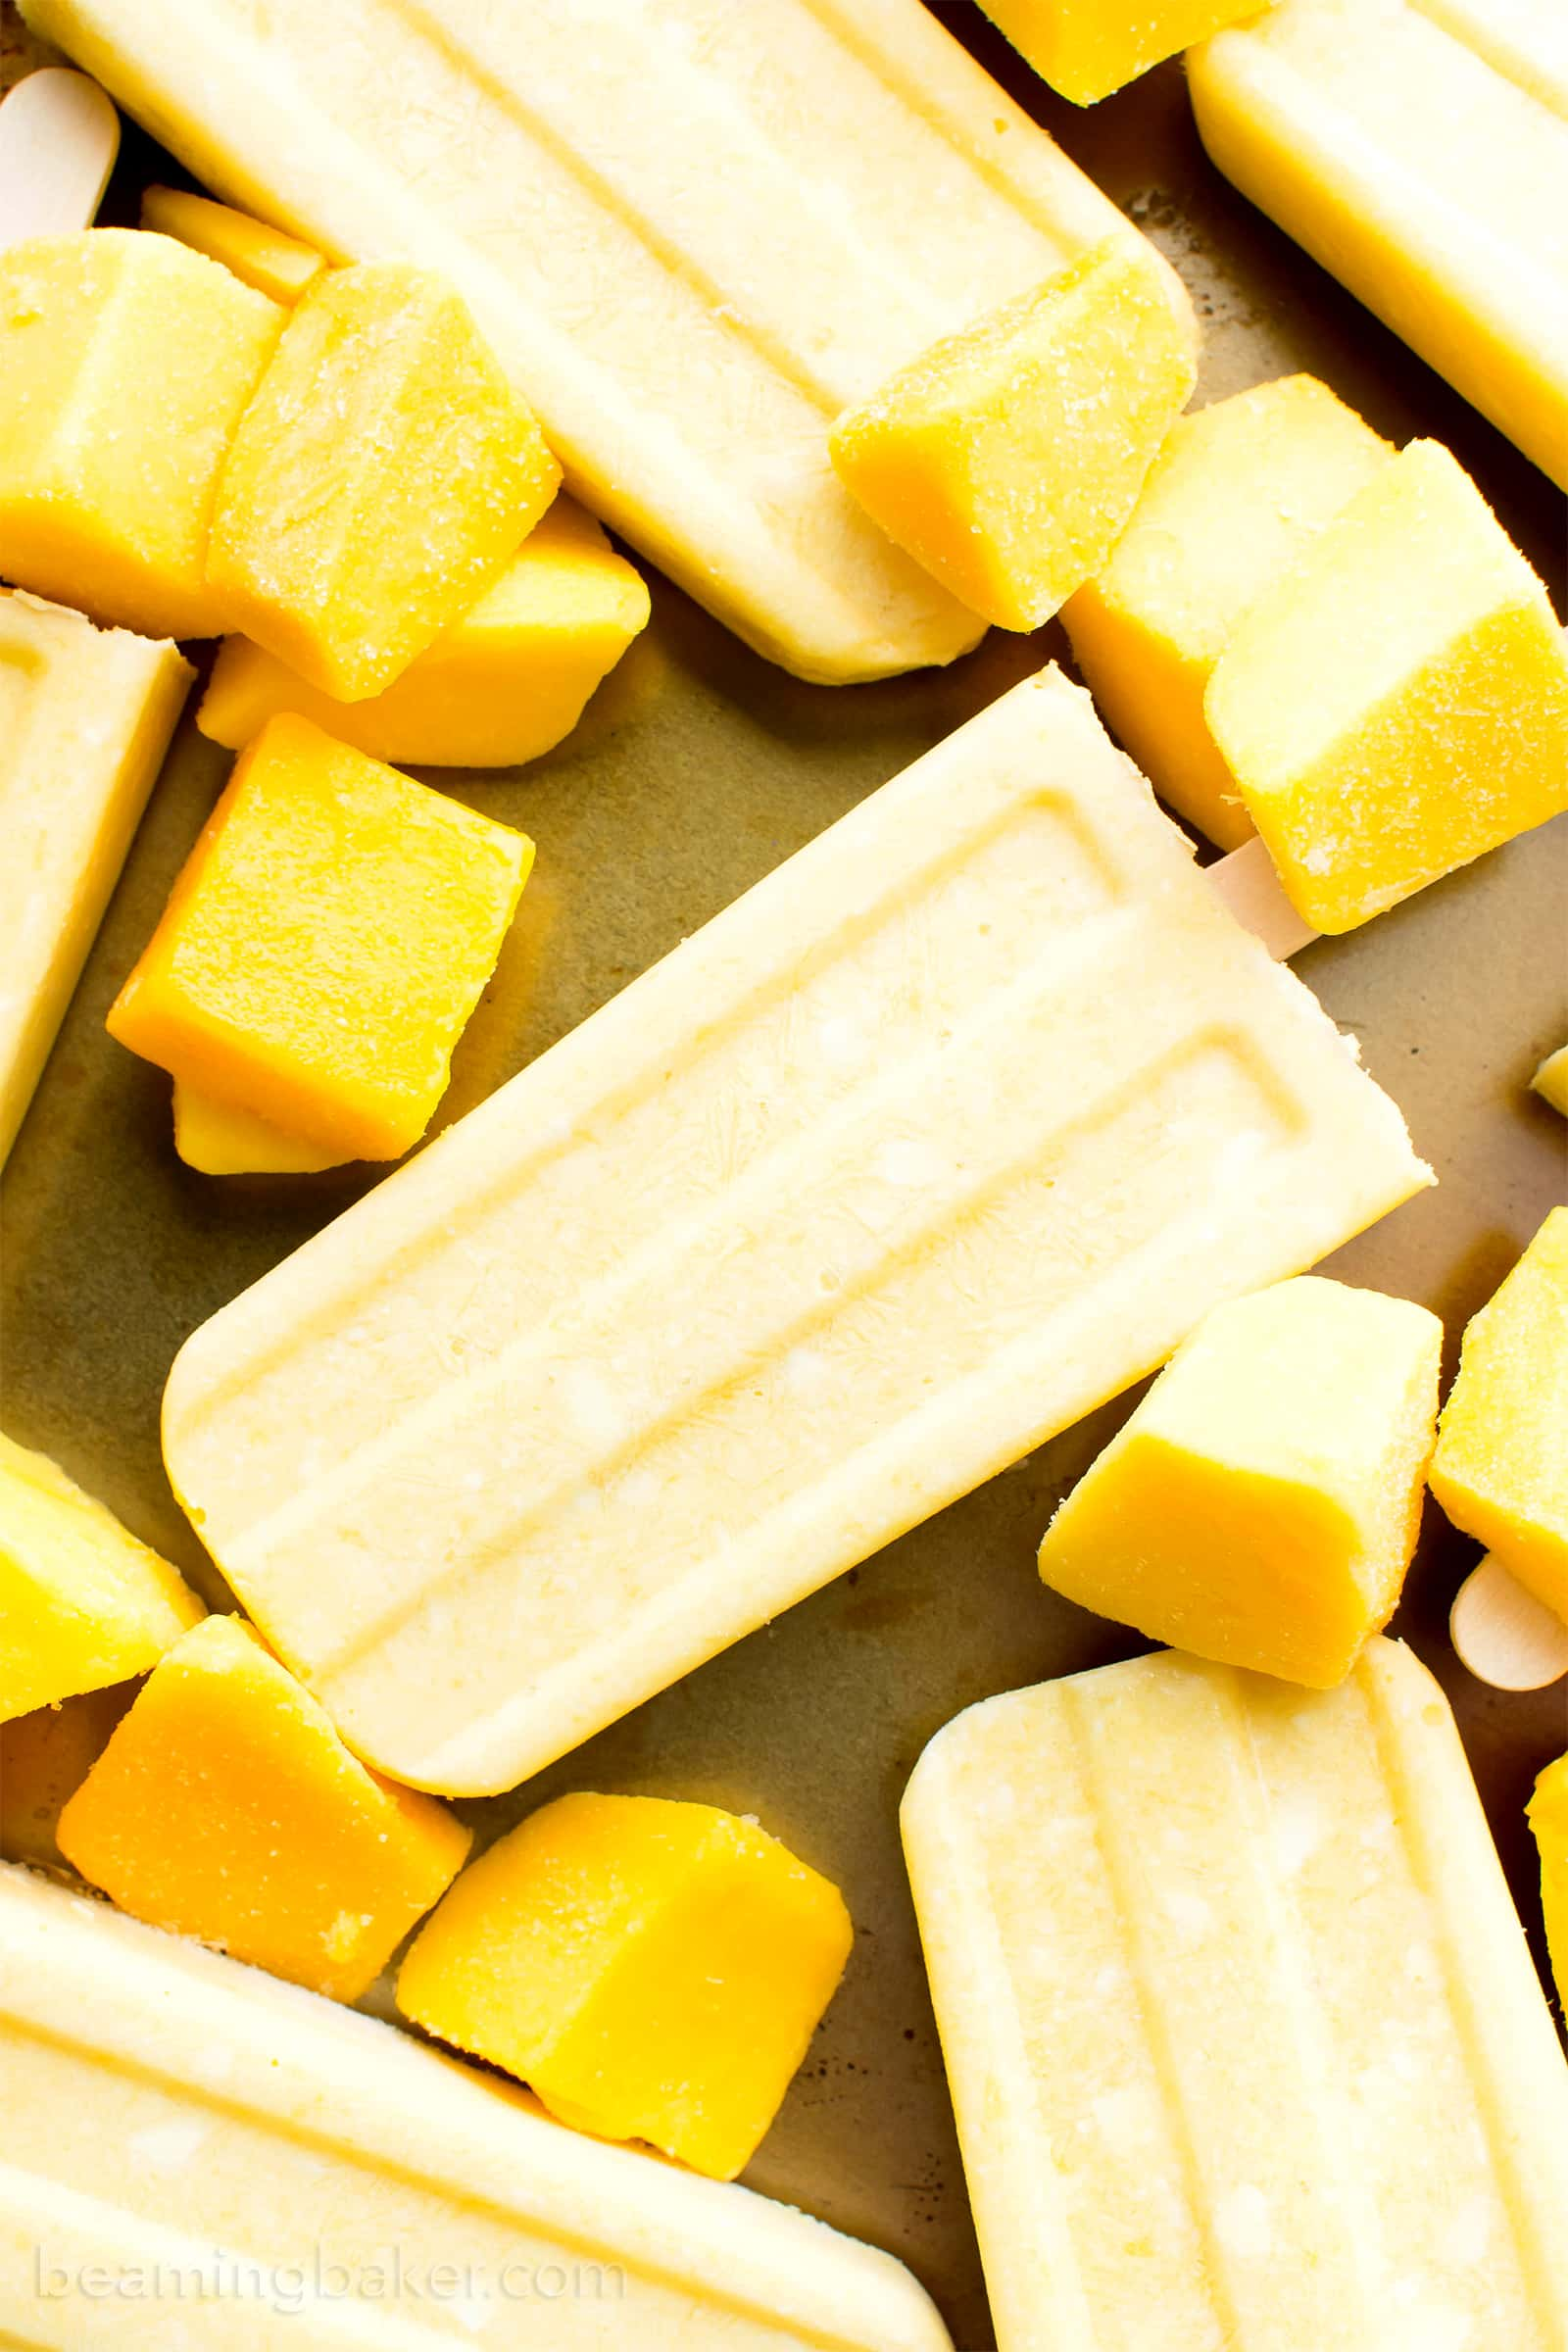 Mango Coconut Cream Popsicles (V, GF, DF): a 3 ingredient recipe for creamy and refreshing popsicles packed with mango and coconut! #Paleo #Vegan #DairyFree #GlutenFree | BeamingBaker.com